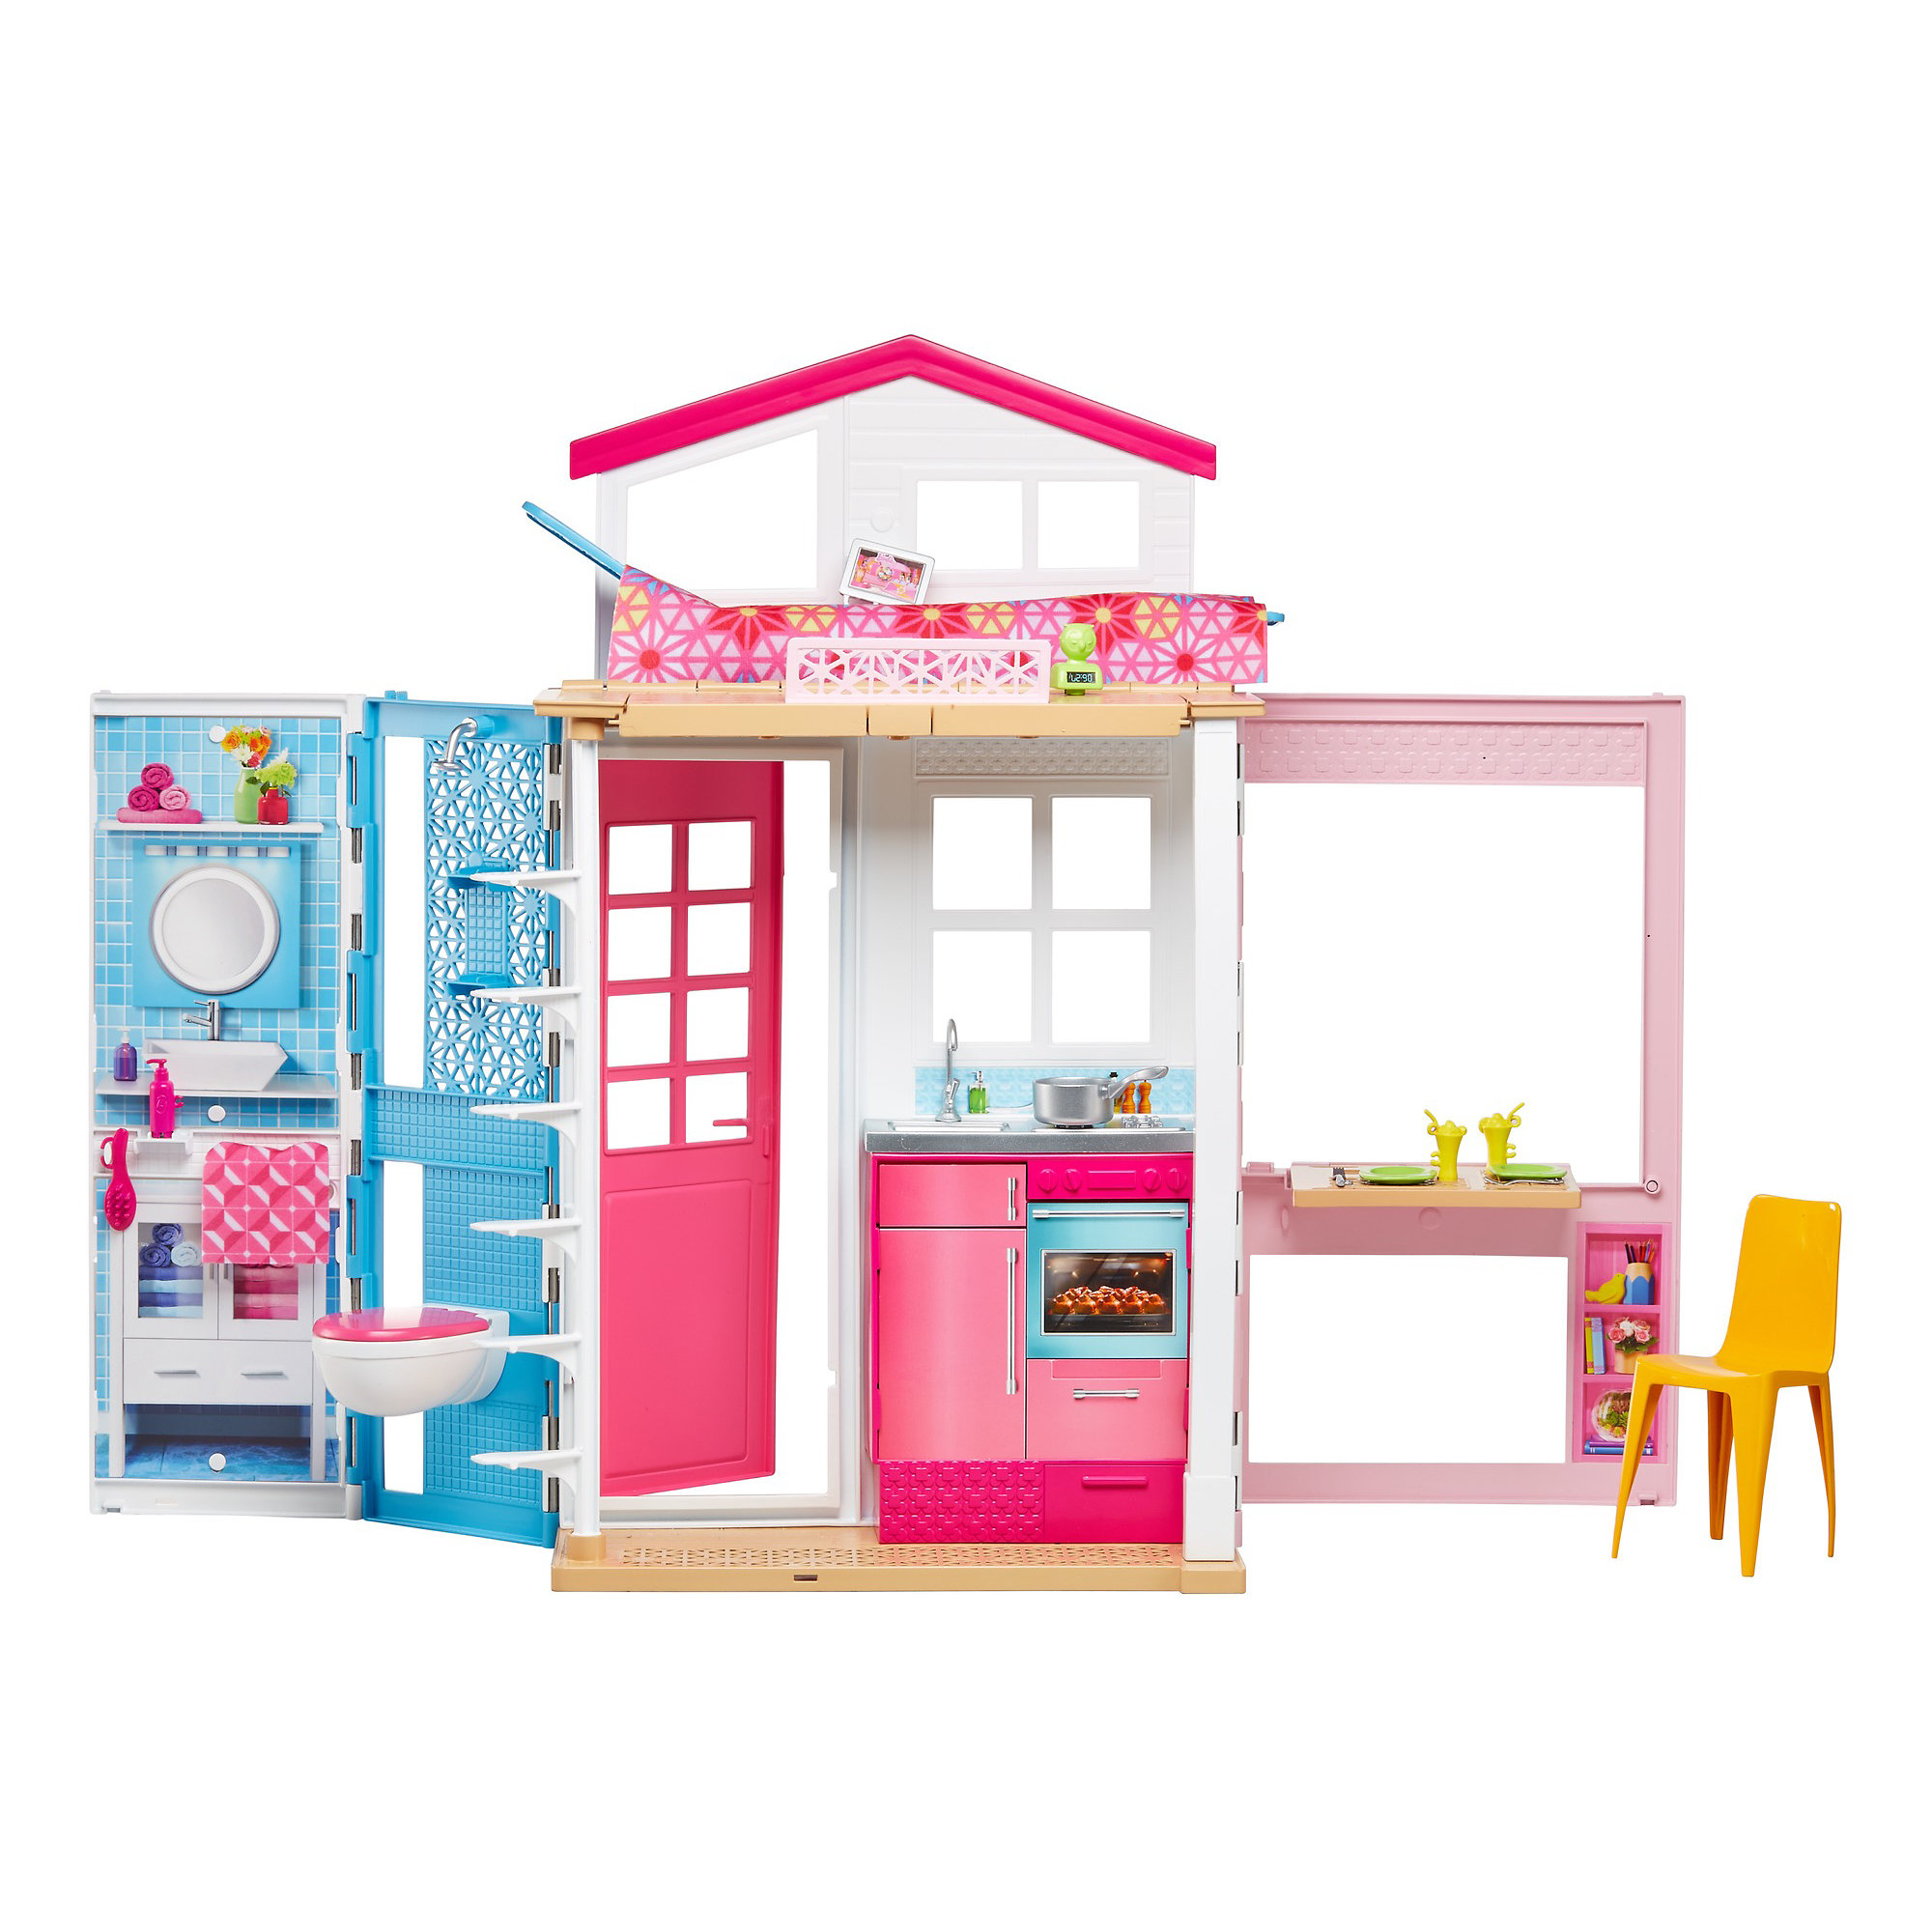 Barbie 2-Story House - Walmart.com